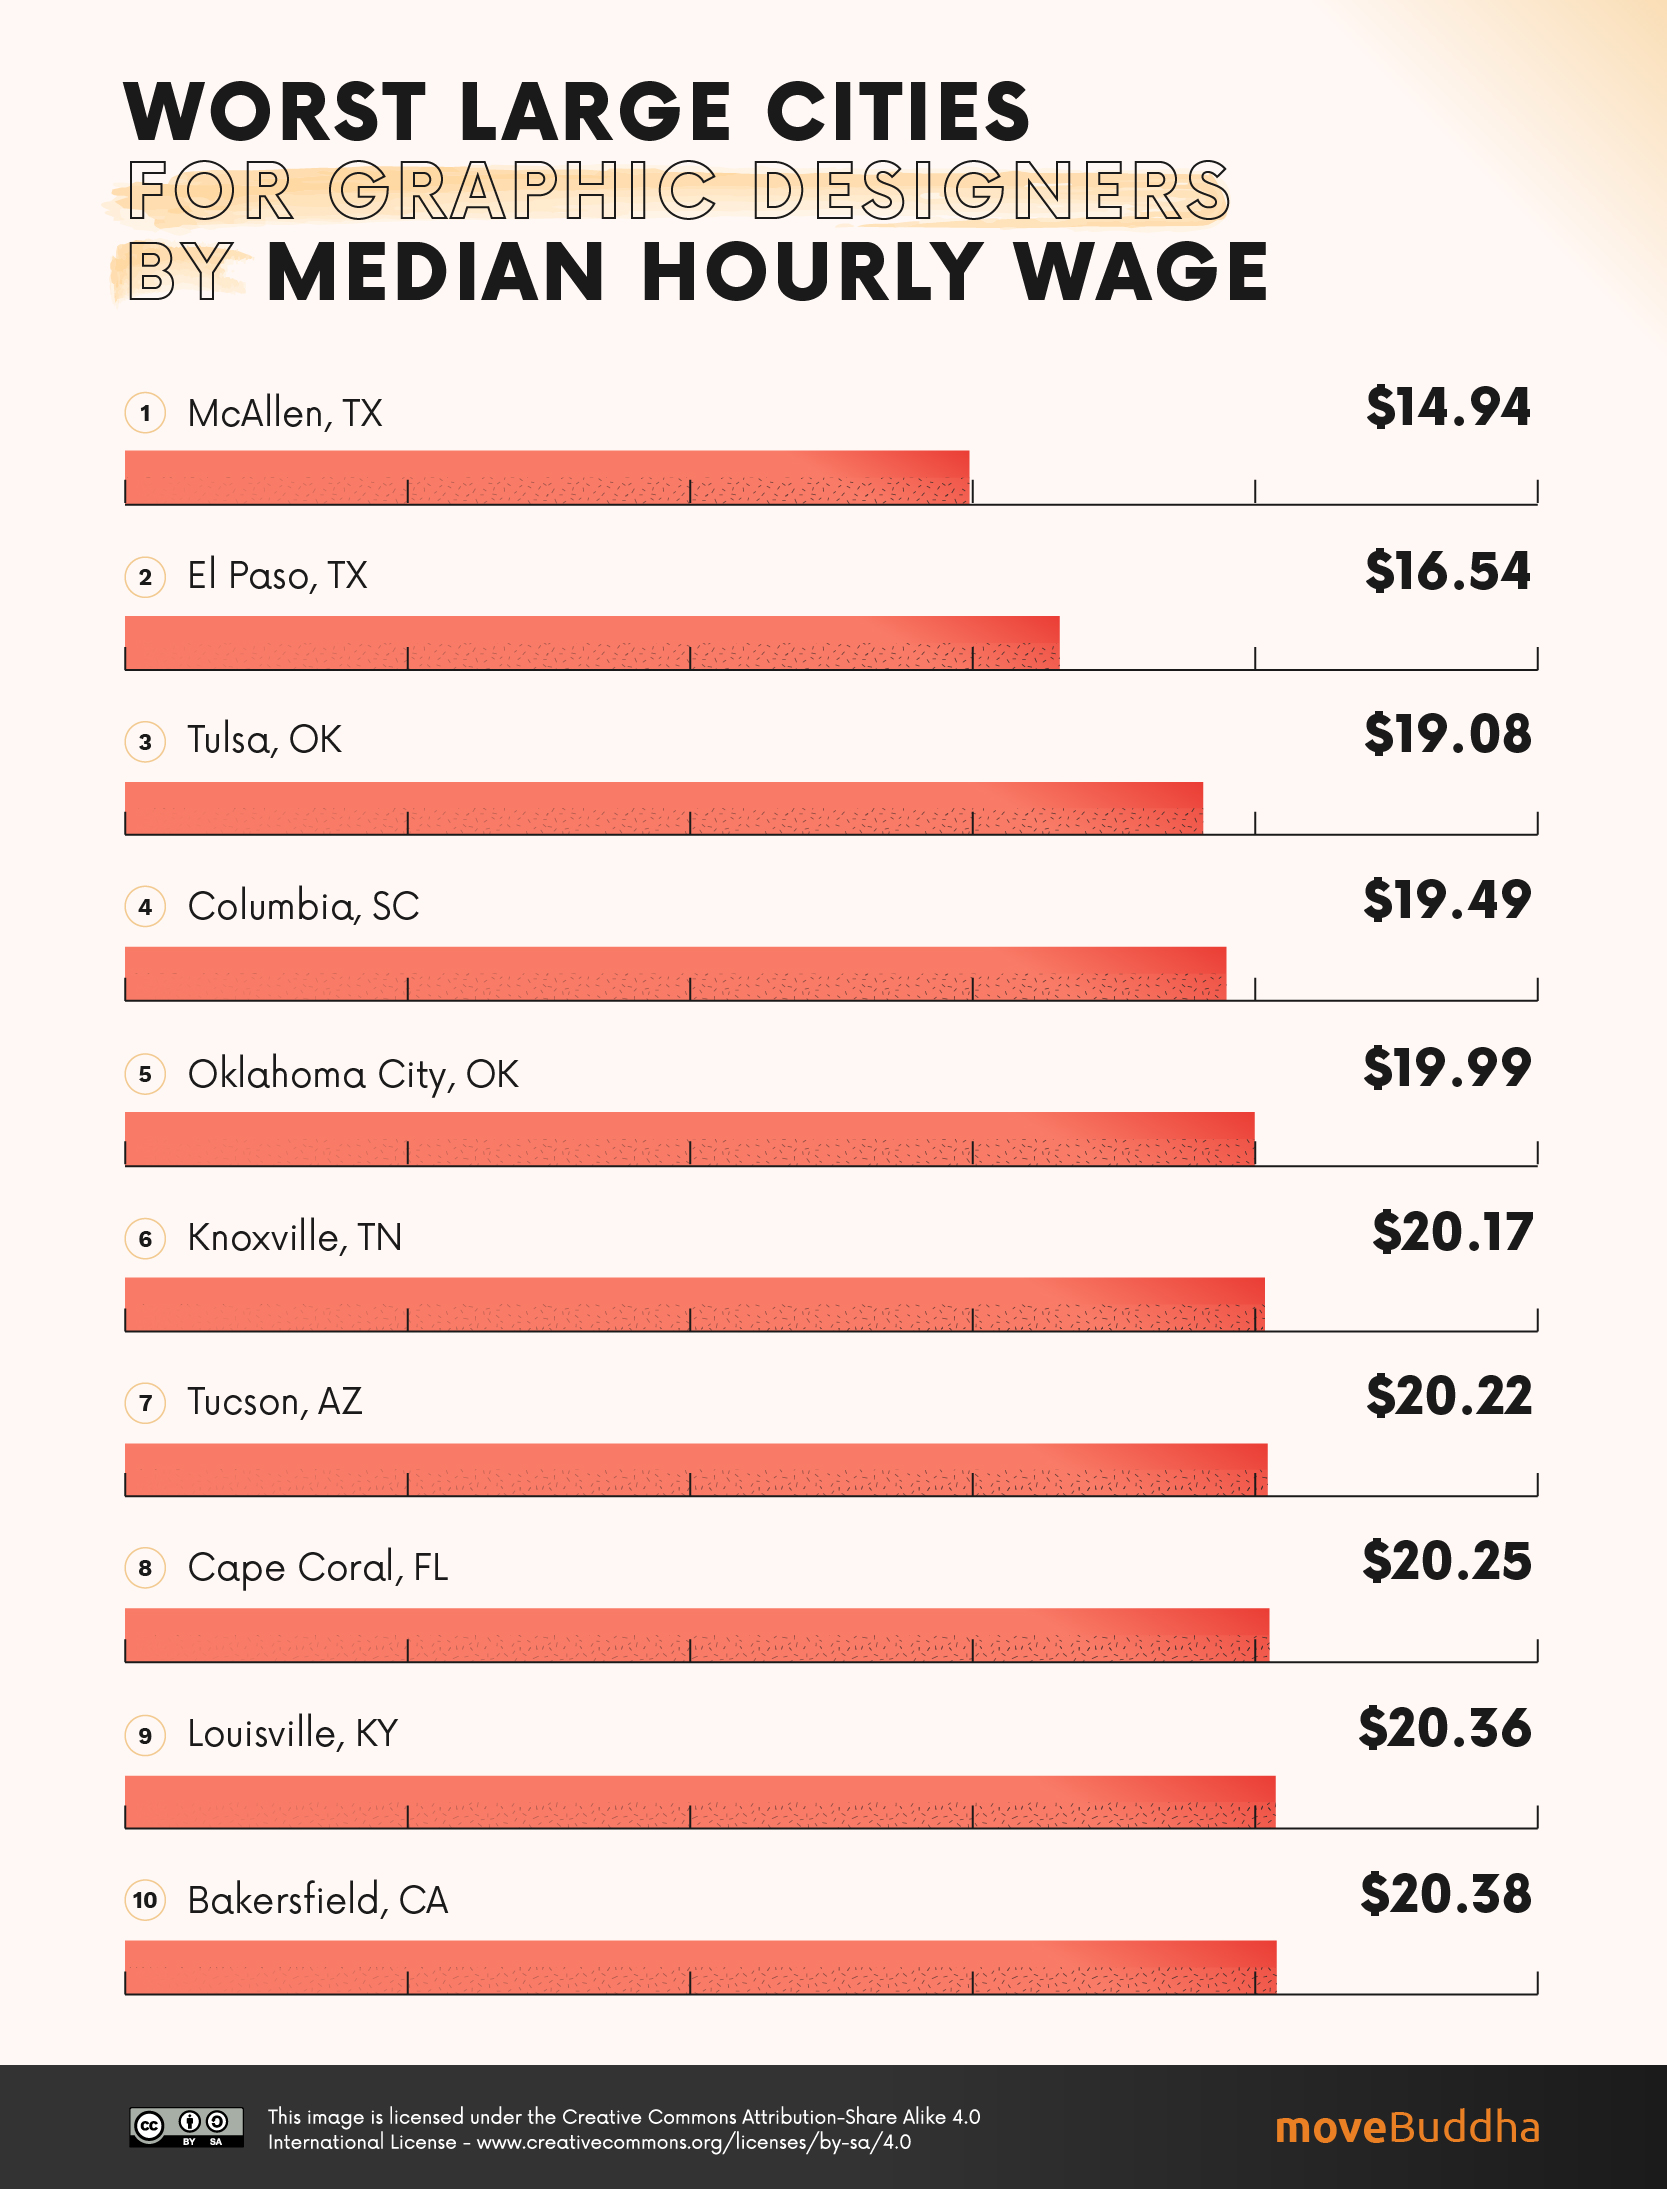 Worst Large Cities for Graphic Designers by Median Hourly Wage